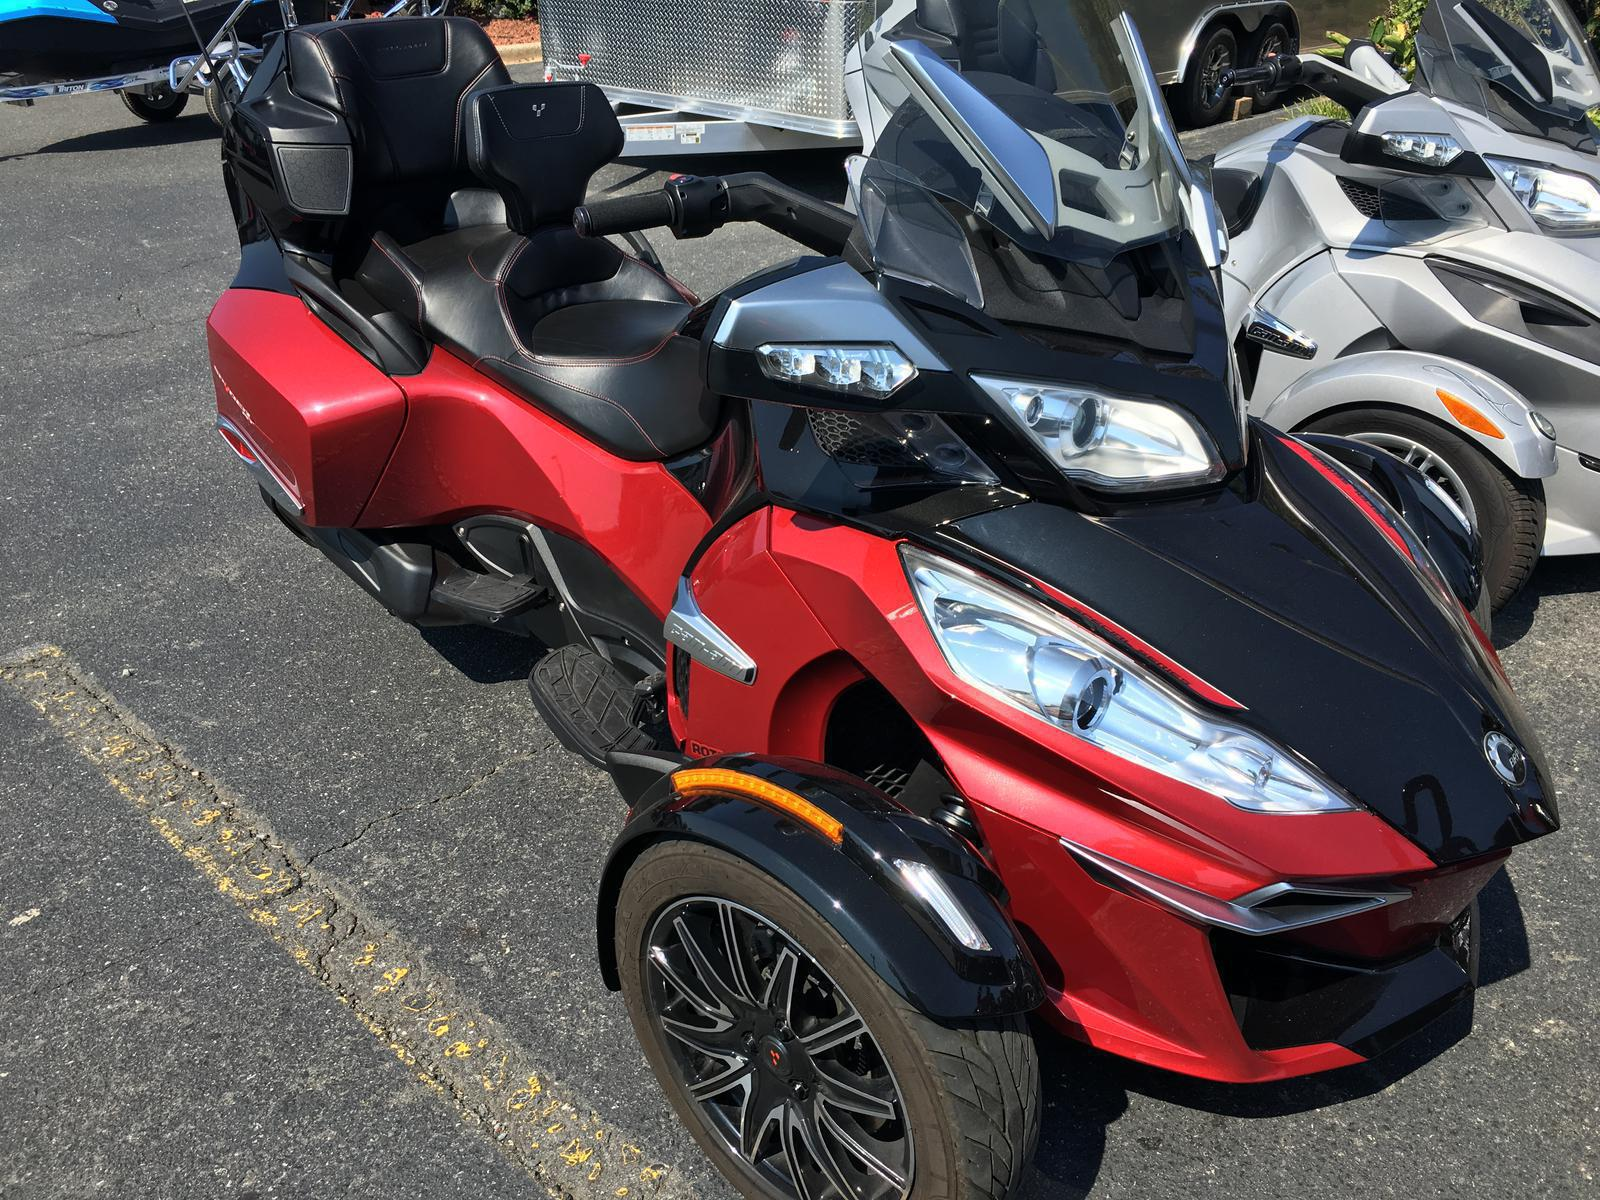 2015 Can Am SPYDER RT S special edition 13 for sale in Matthews NC